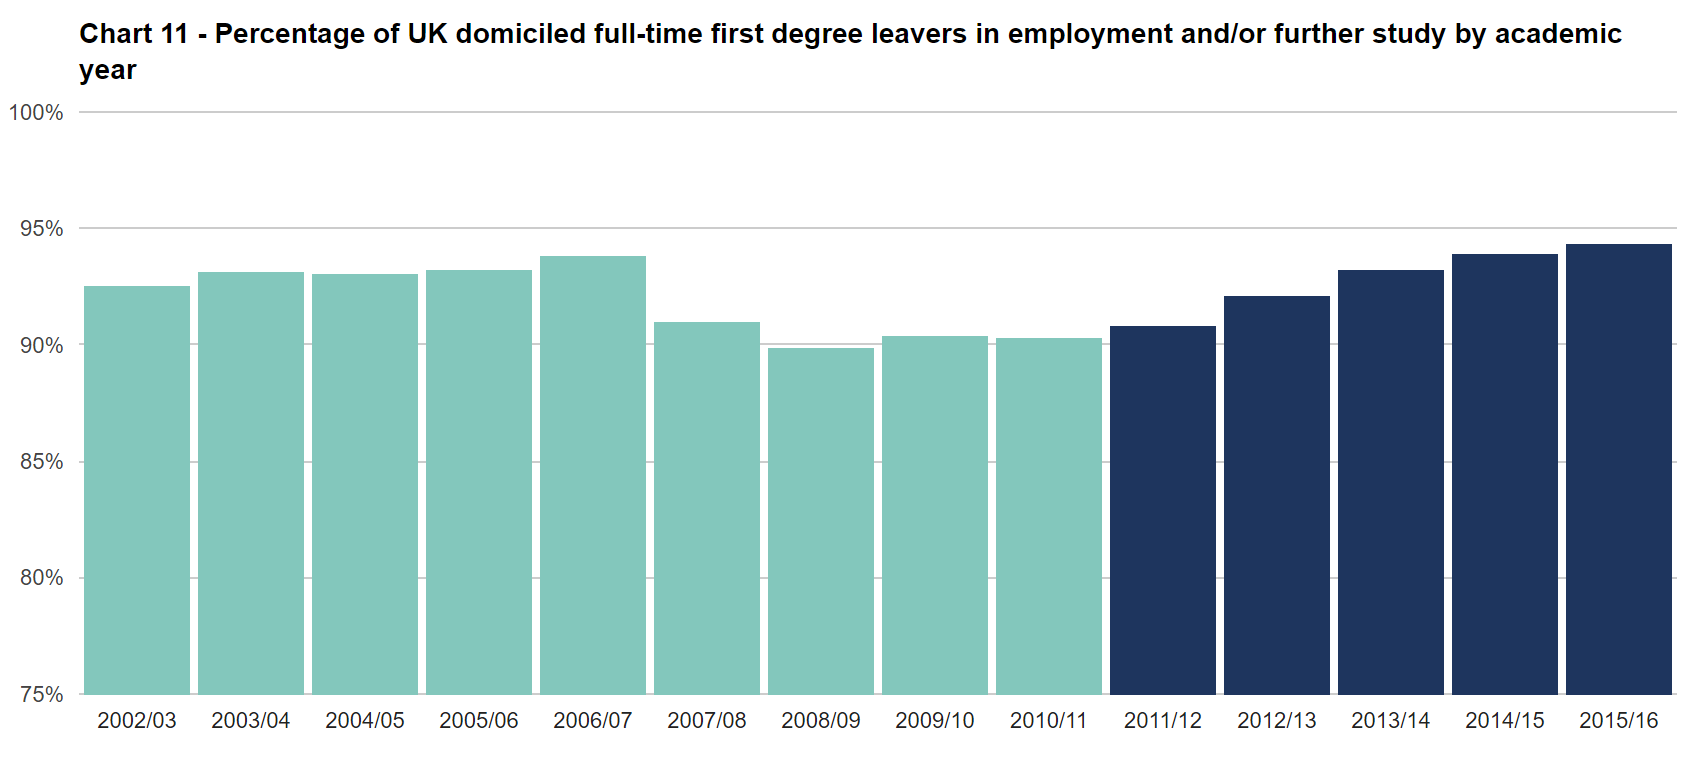 Chart 11 - Percentage of UK domiciled full-time first degree leavers in employment and/or further study by academic year